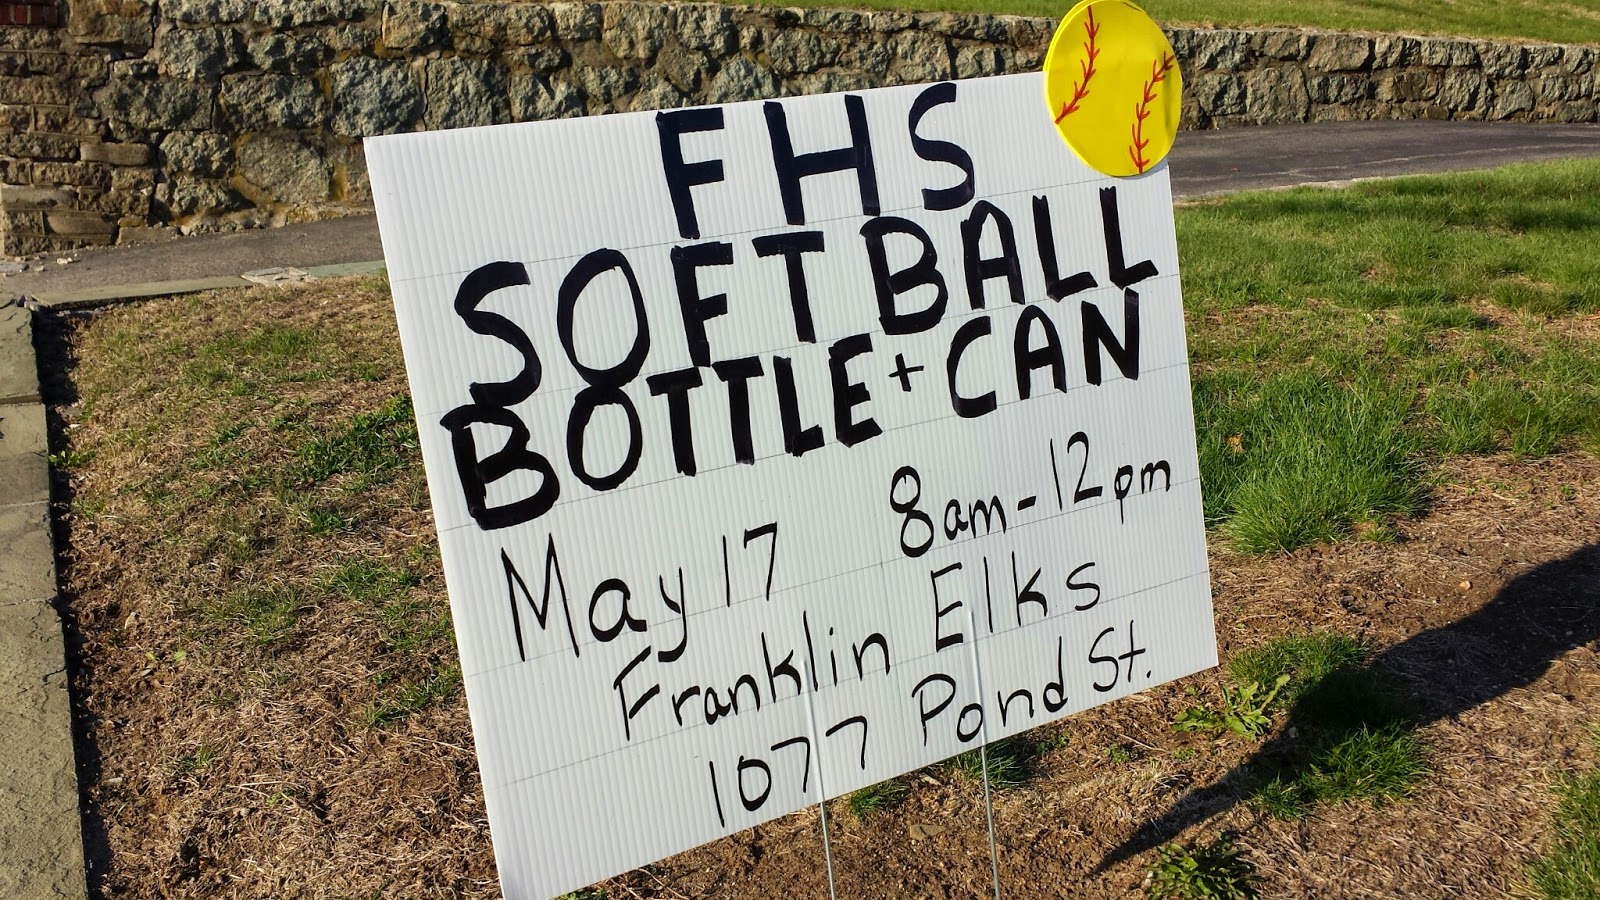 FHS Softball - bottle/can drive May 17